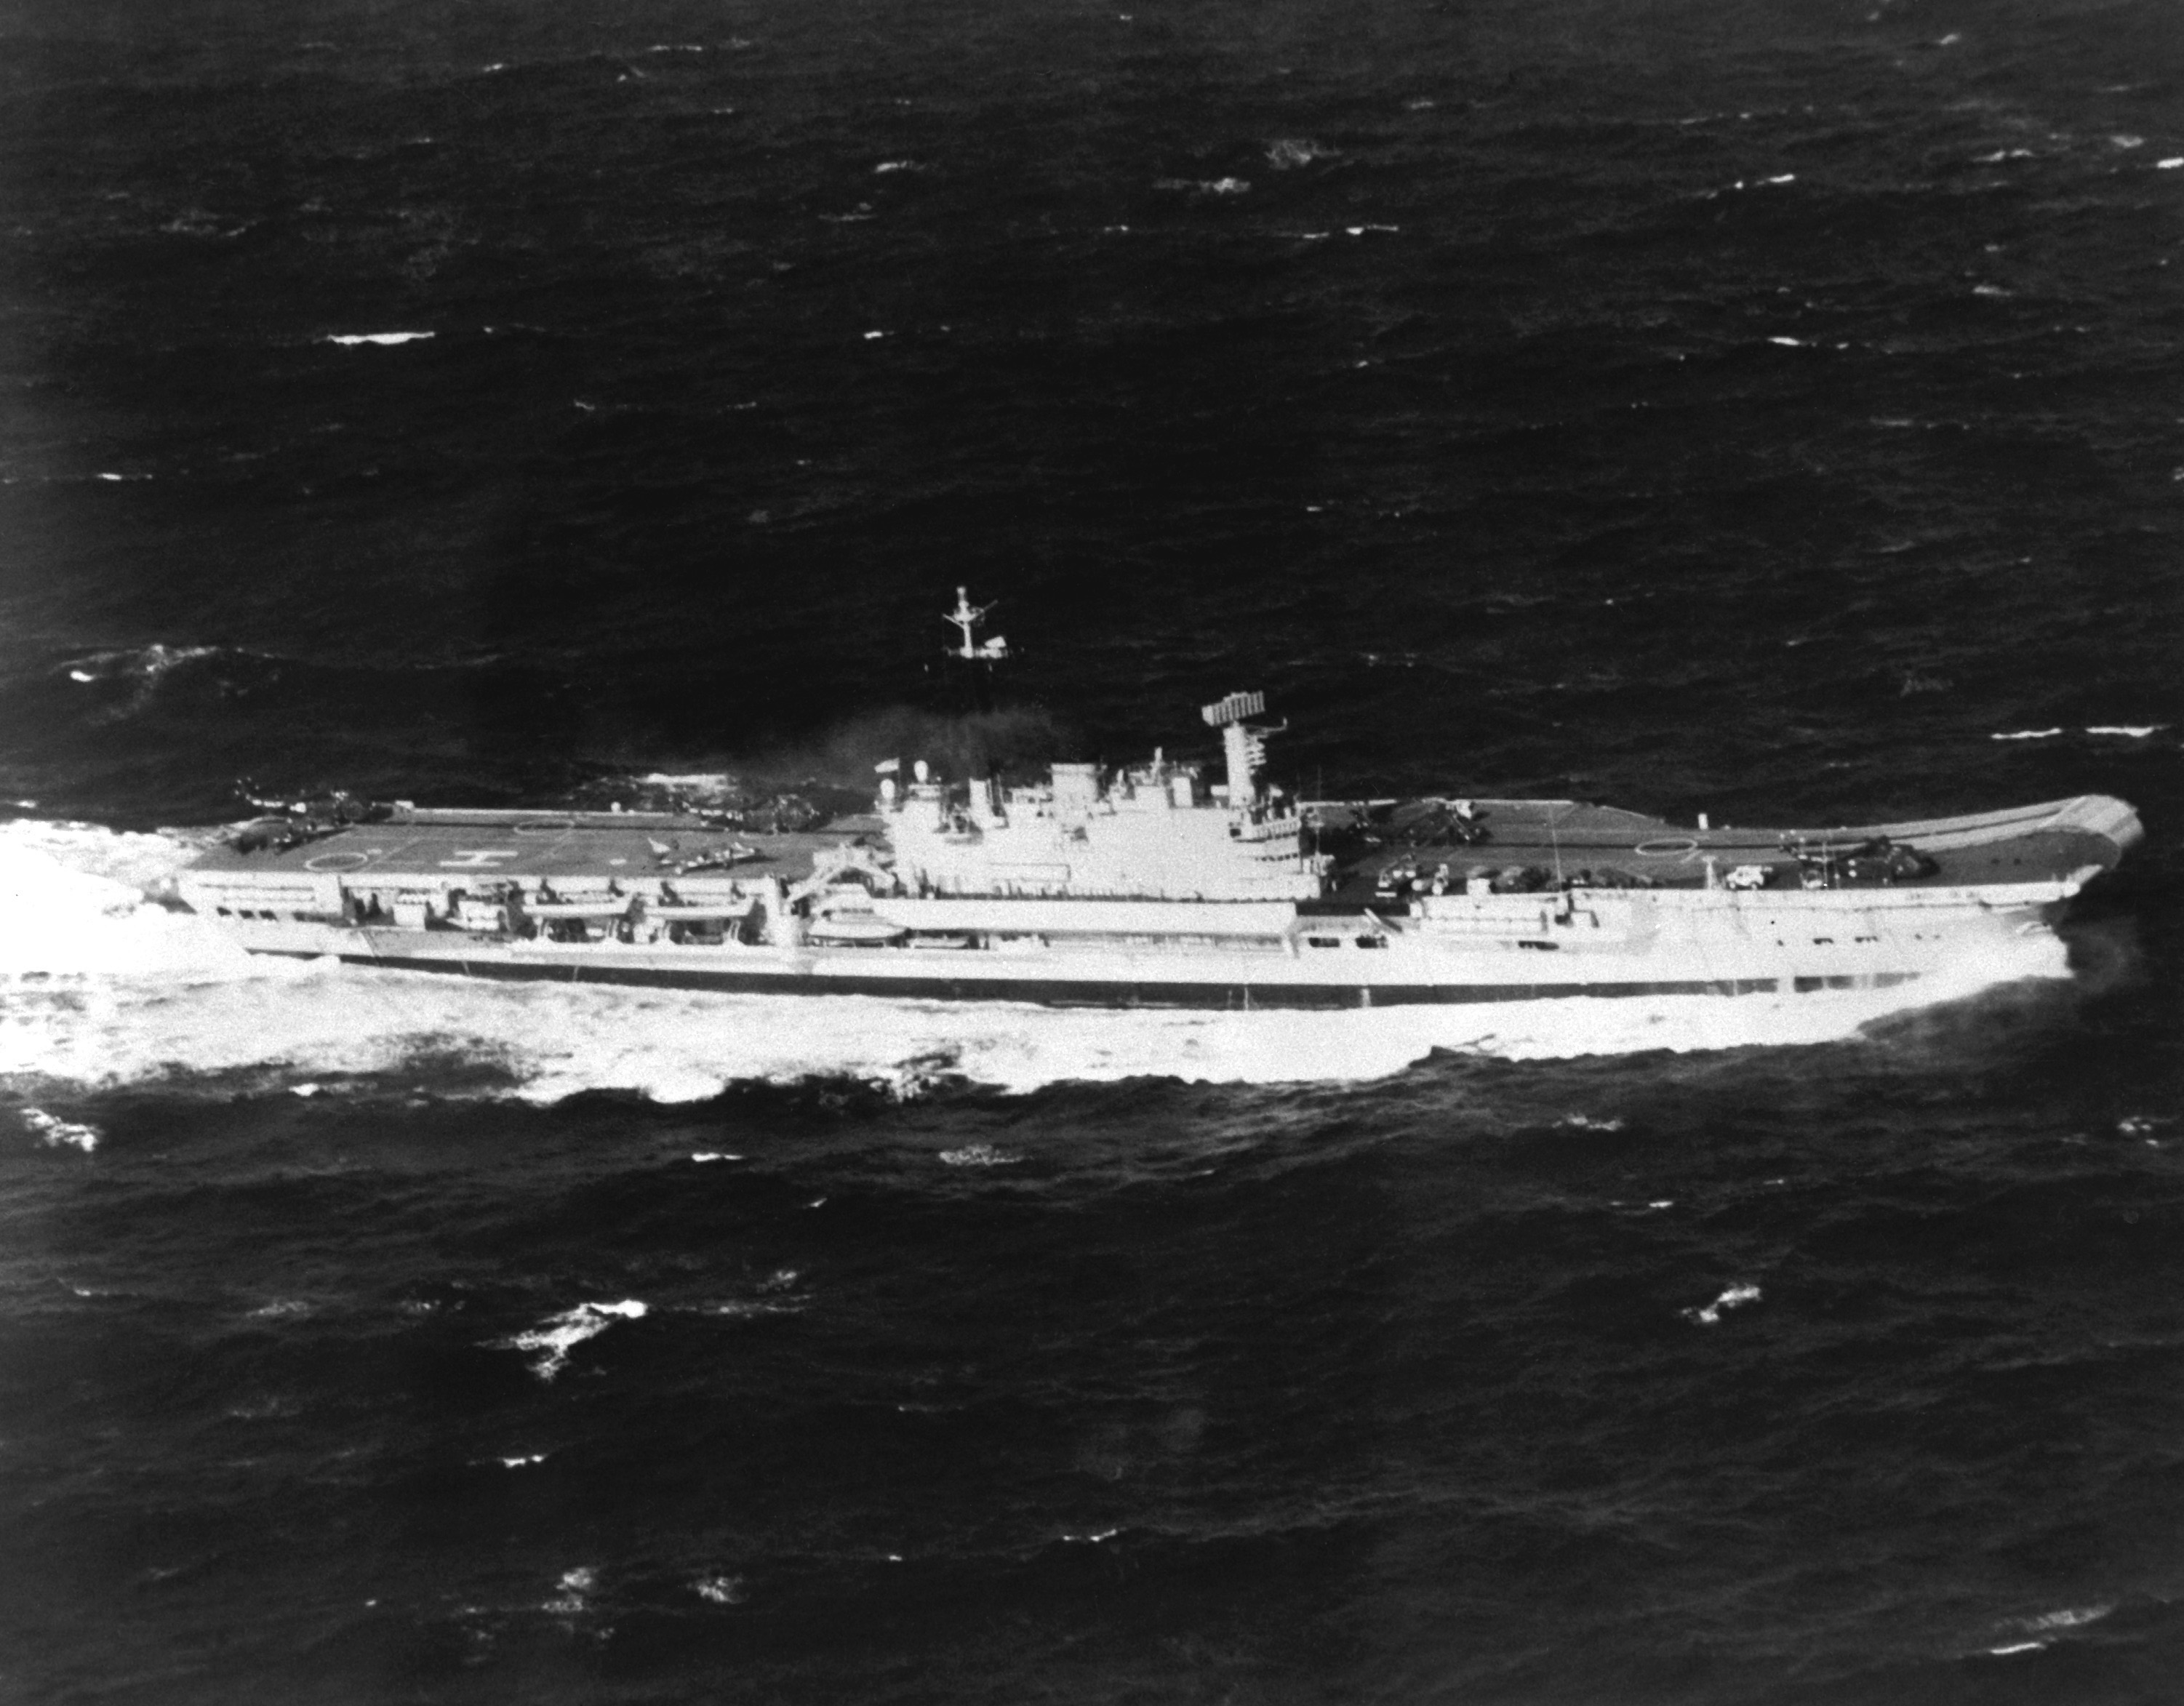 Aerial starboard beam view of the British aircraft carrier HMS HERMES (R-12) underway.